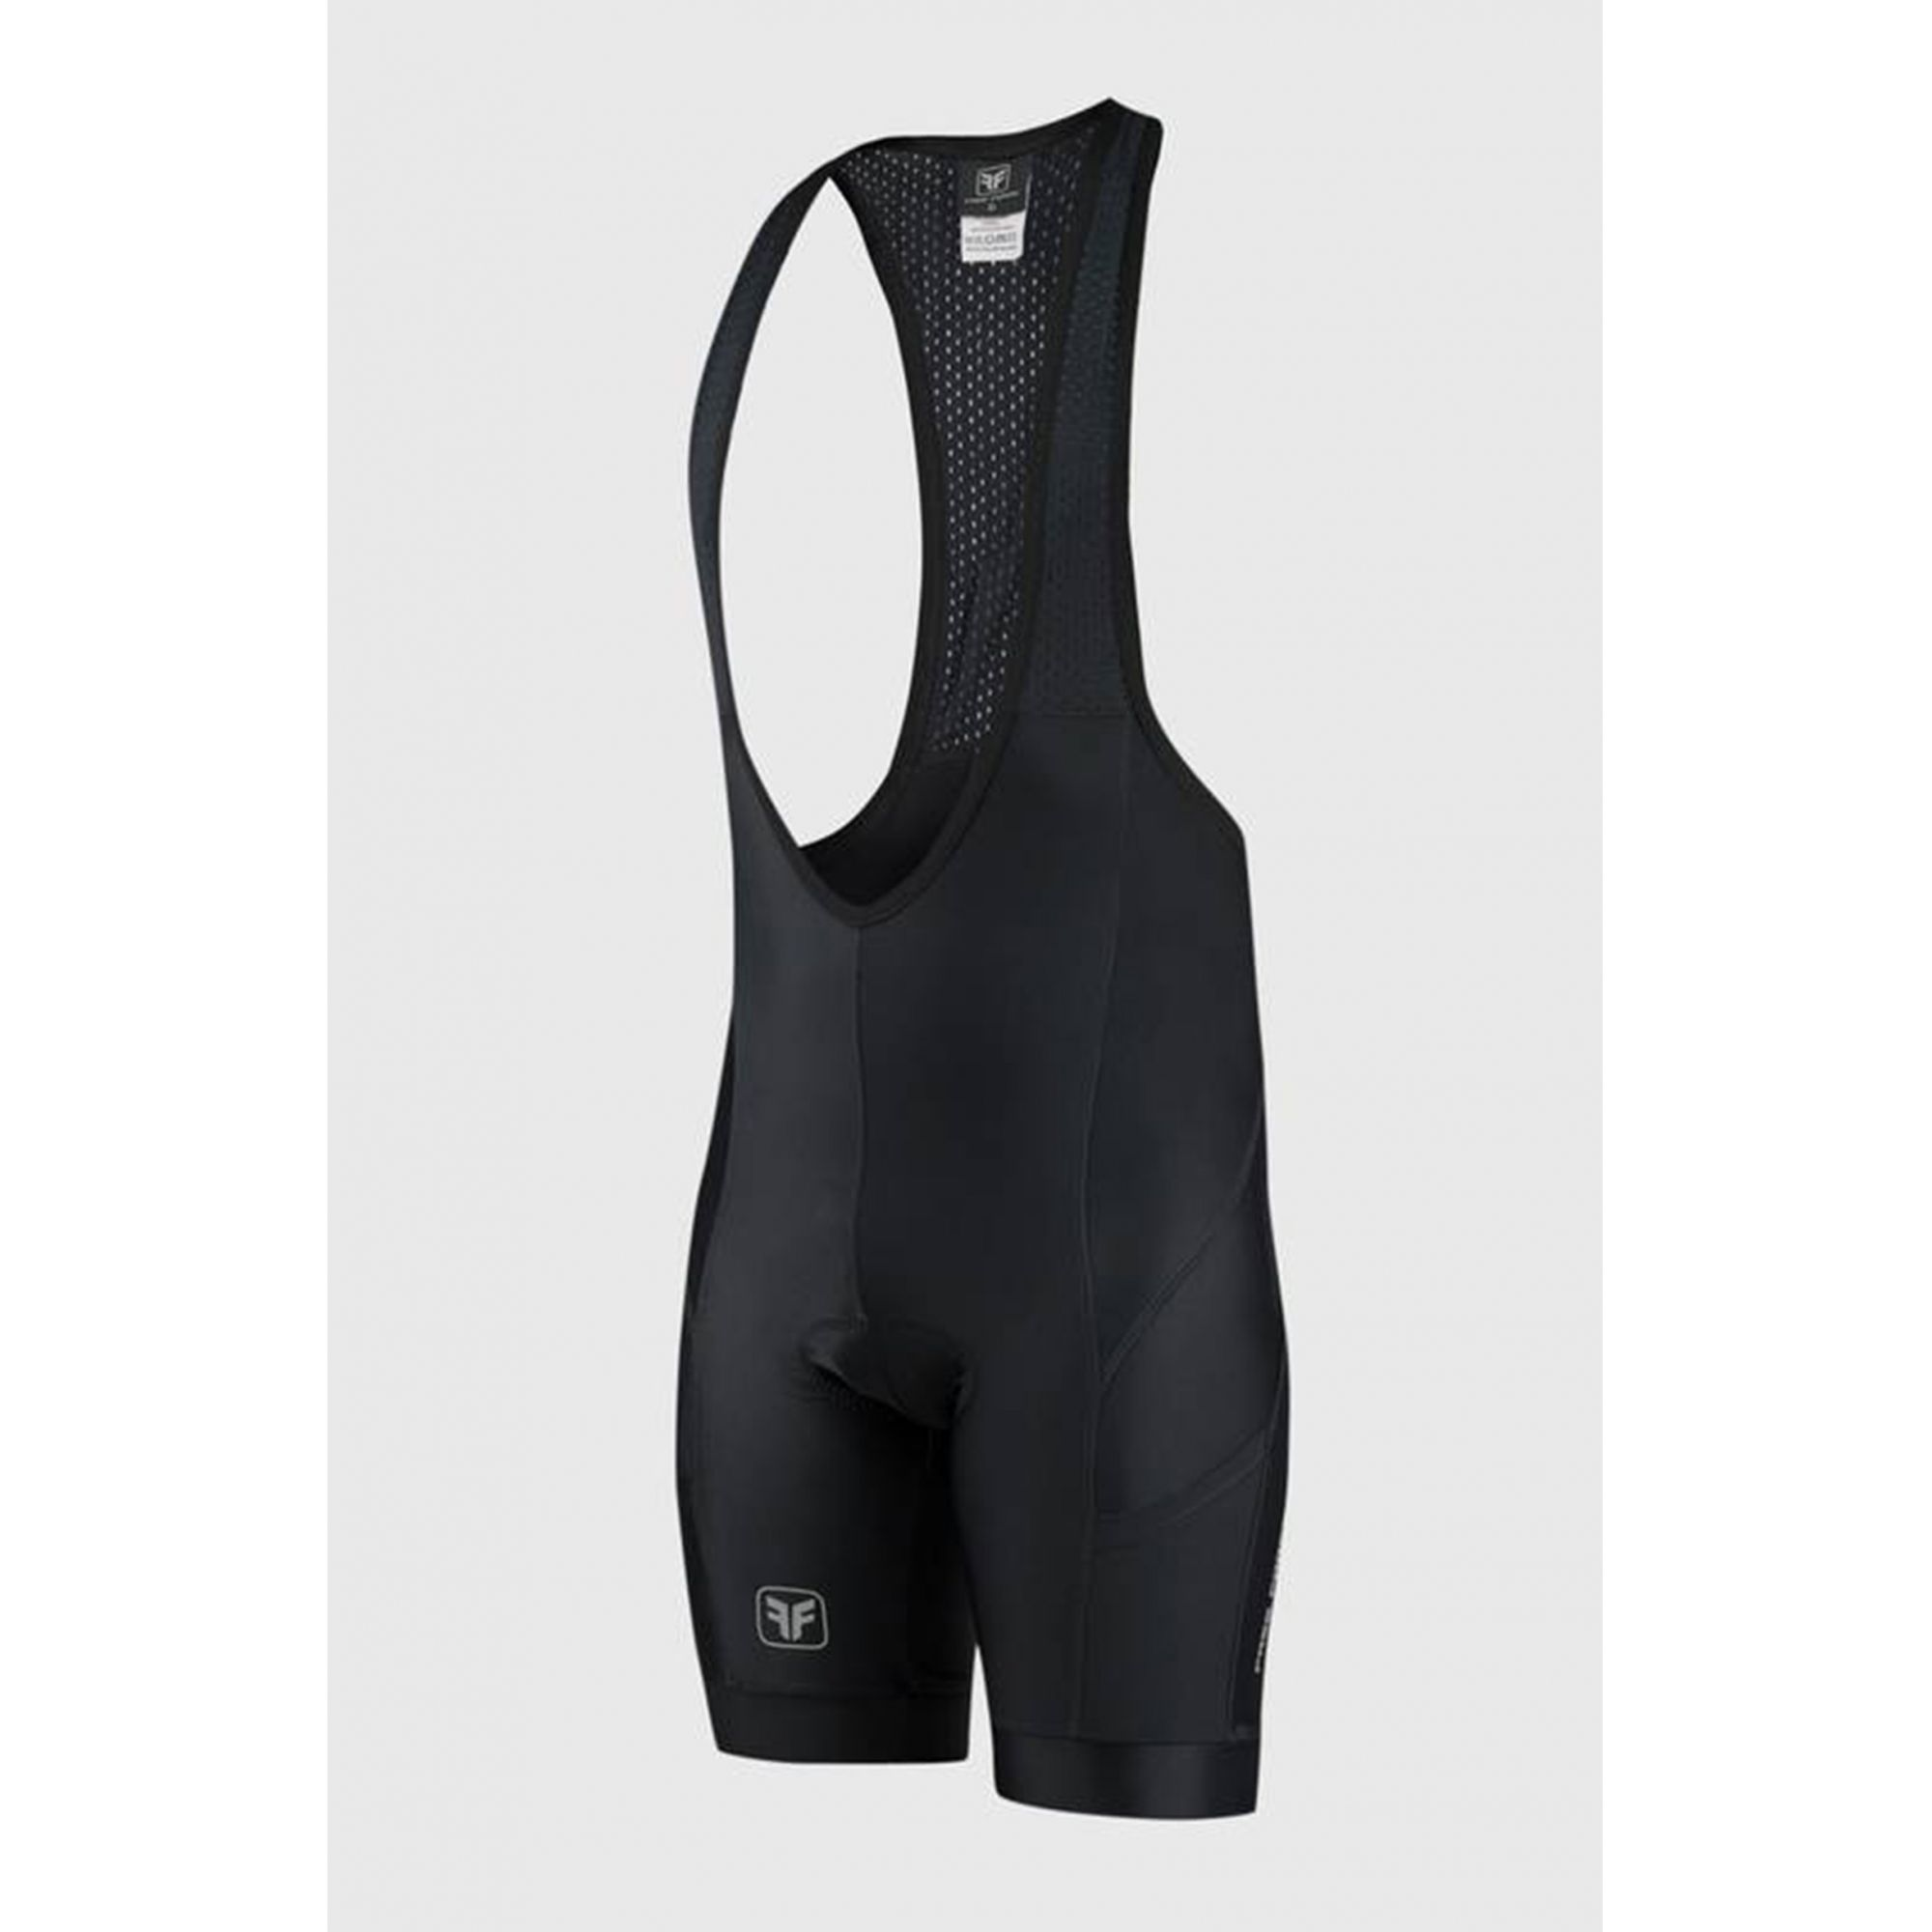 Bretelle Ciclismo Masculina Sport One - Free Force